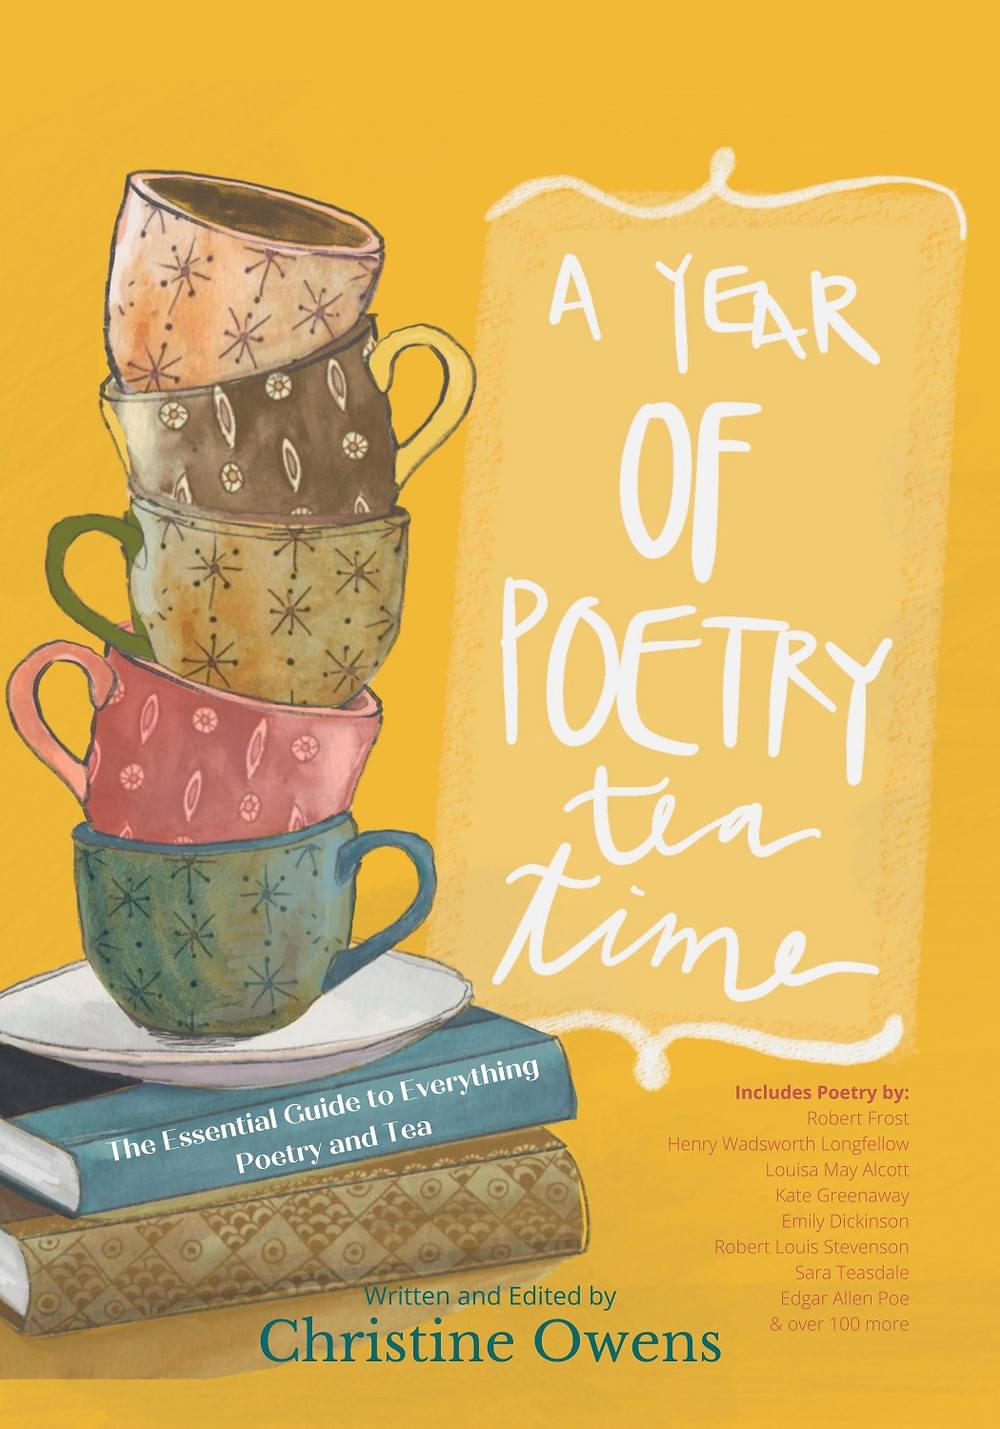 A Year of Poetry Tea Time The Essential Guide to Everything Poetry and Tea